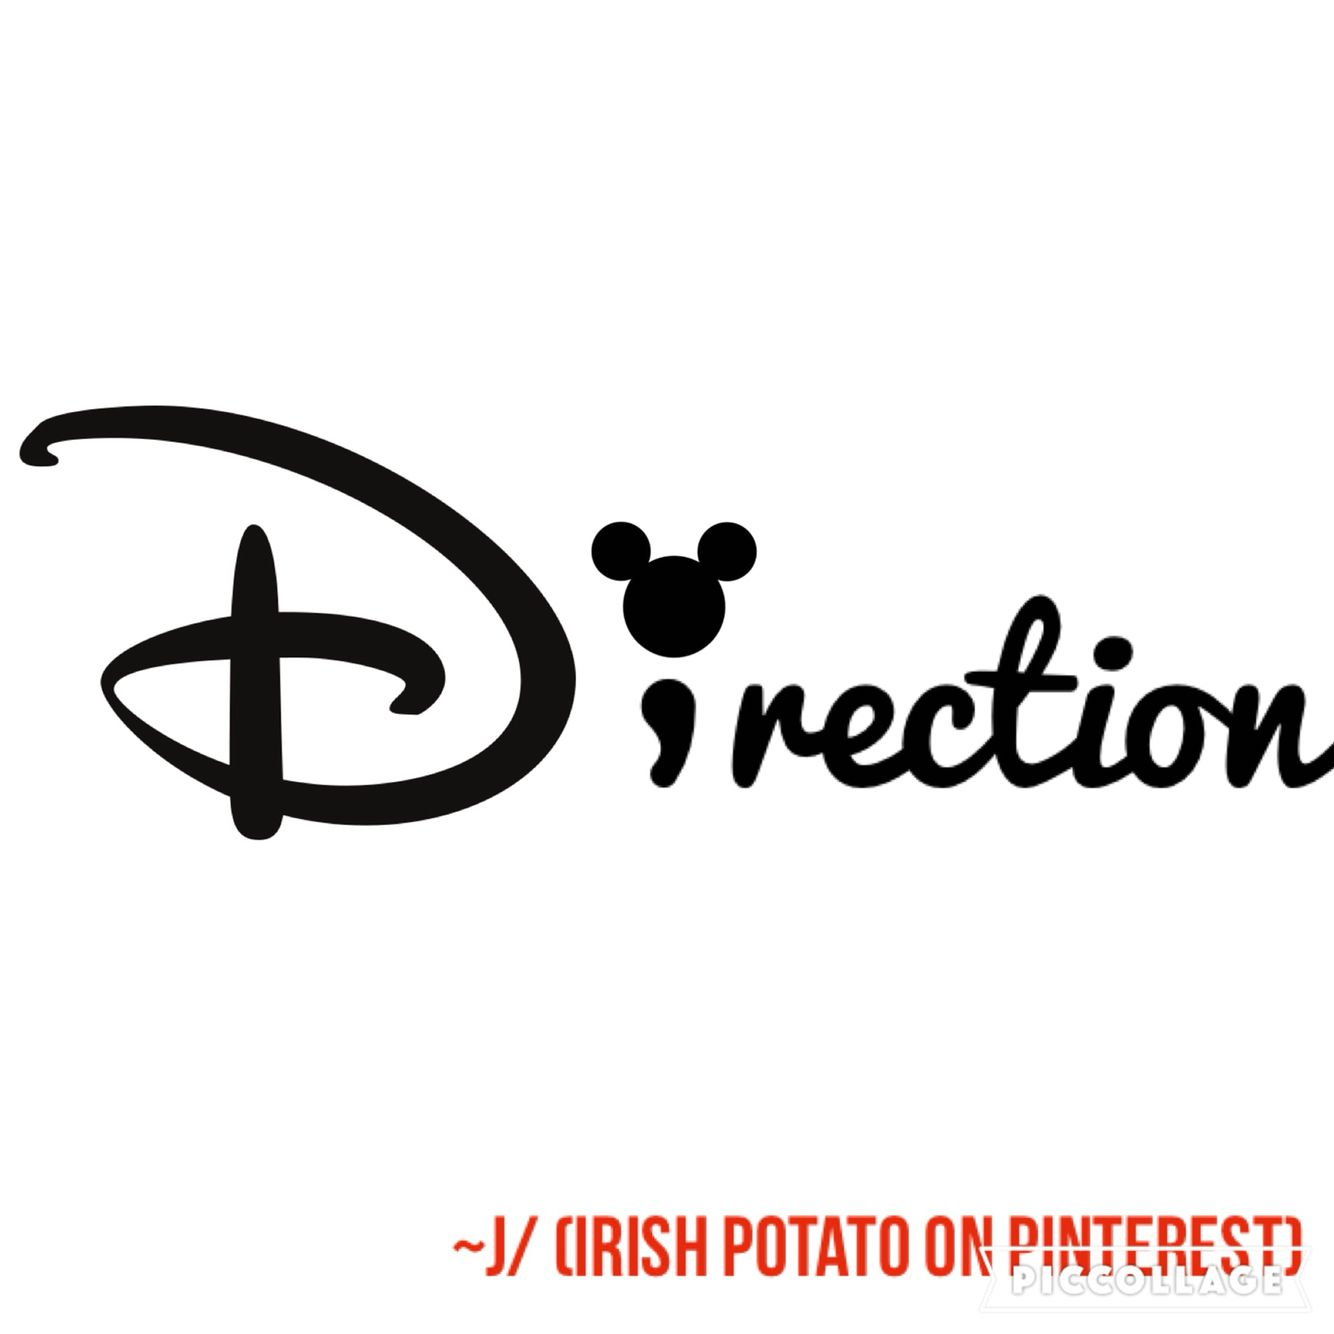 Disney tattoo, semi colon tattoo, one direction tattoo, free tattoo template (Irish potato on Pinterest)